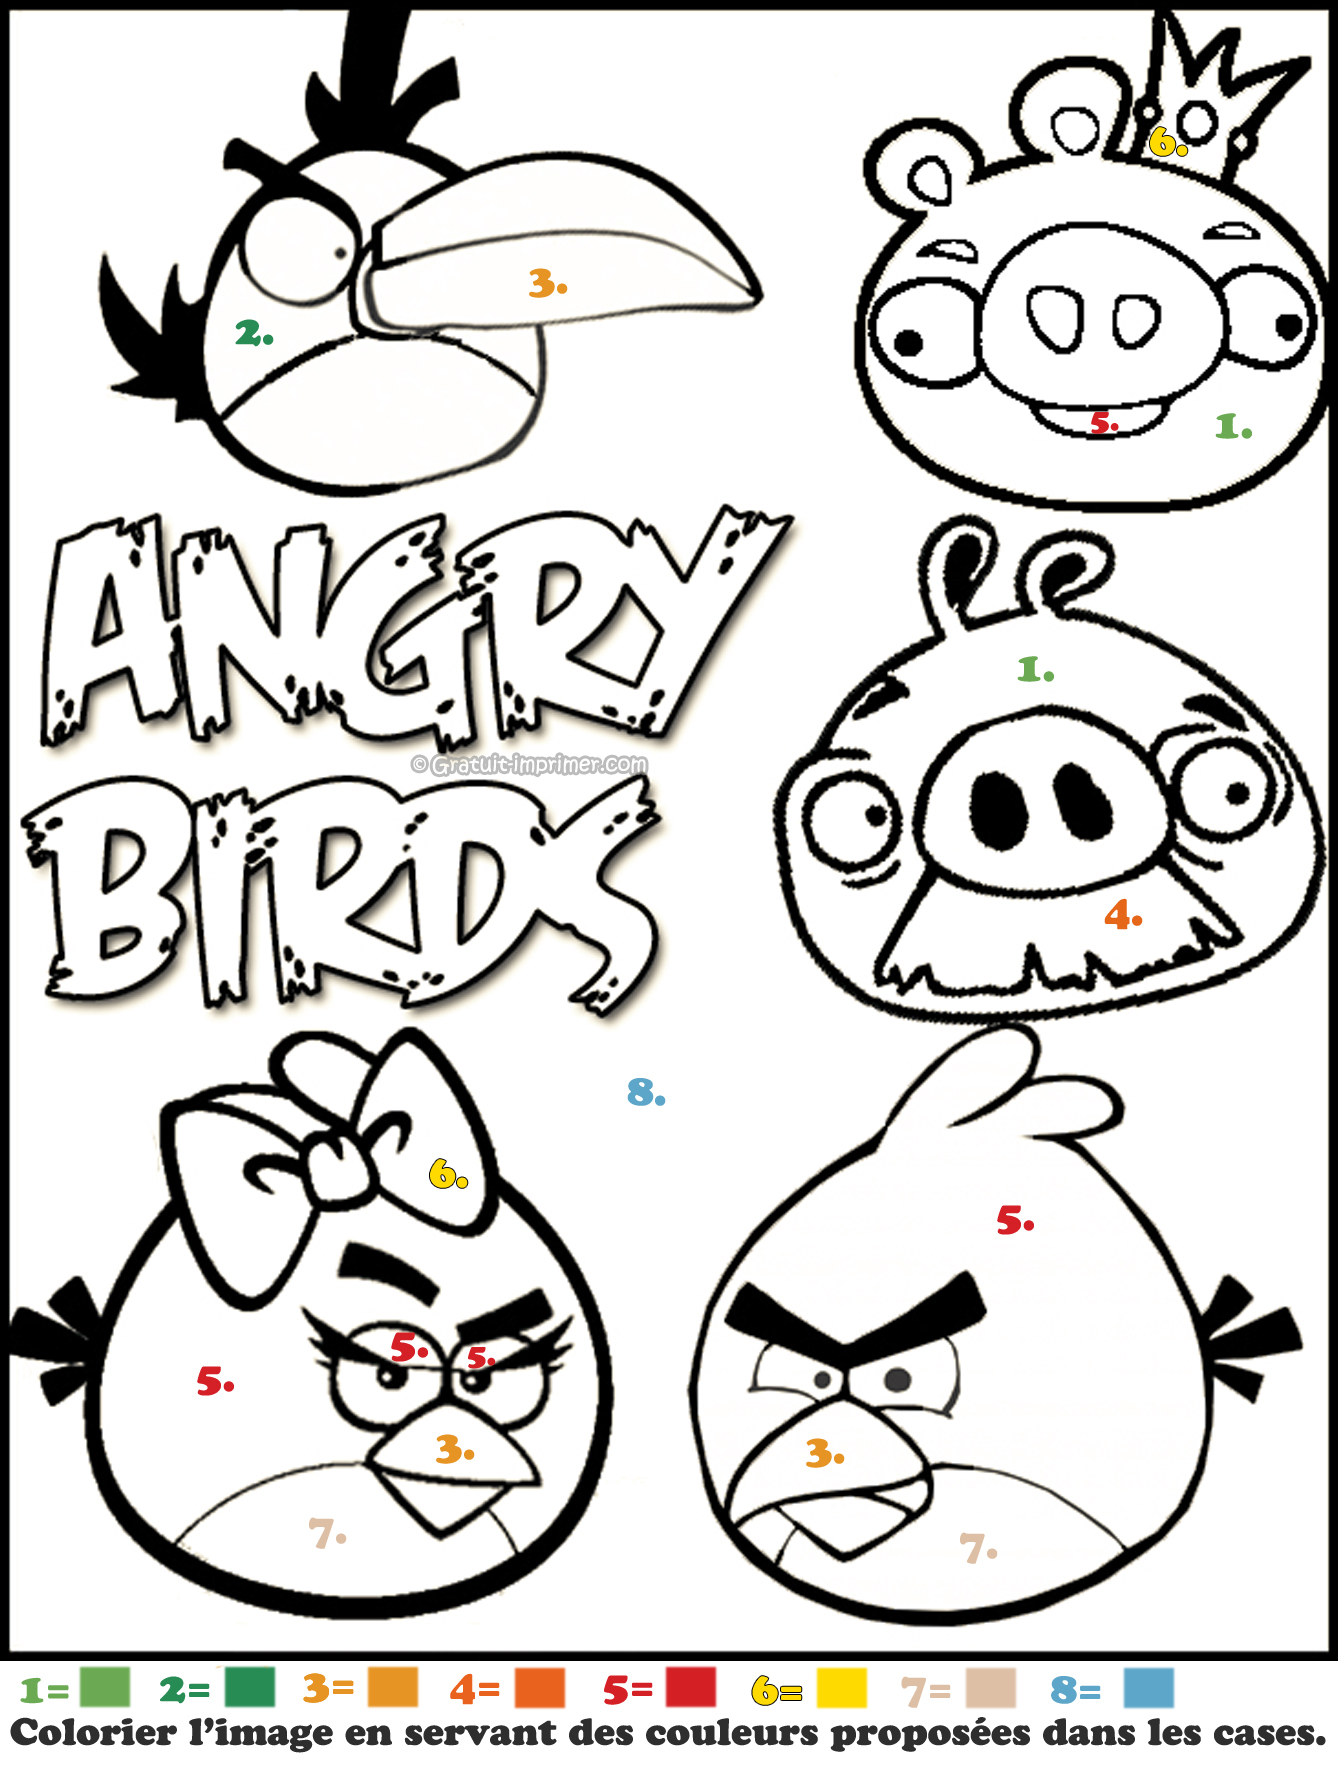 Angry birds colorier a - Dessin a colorier angry bird ...